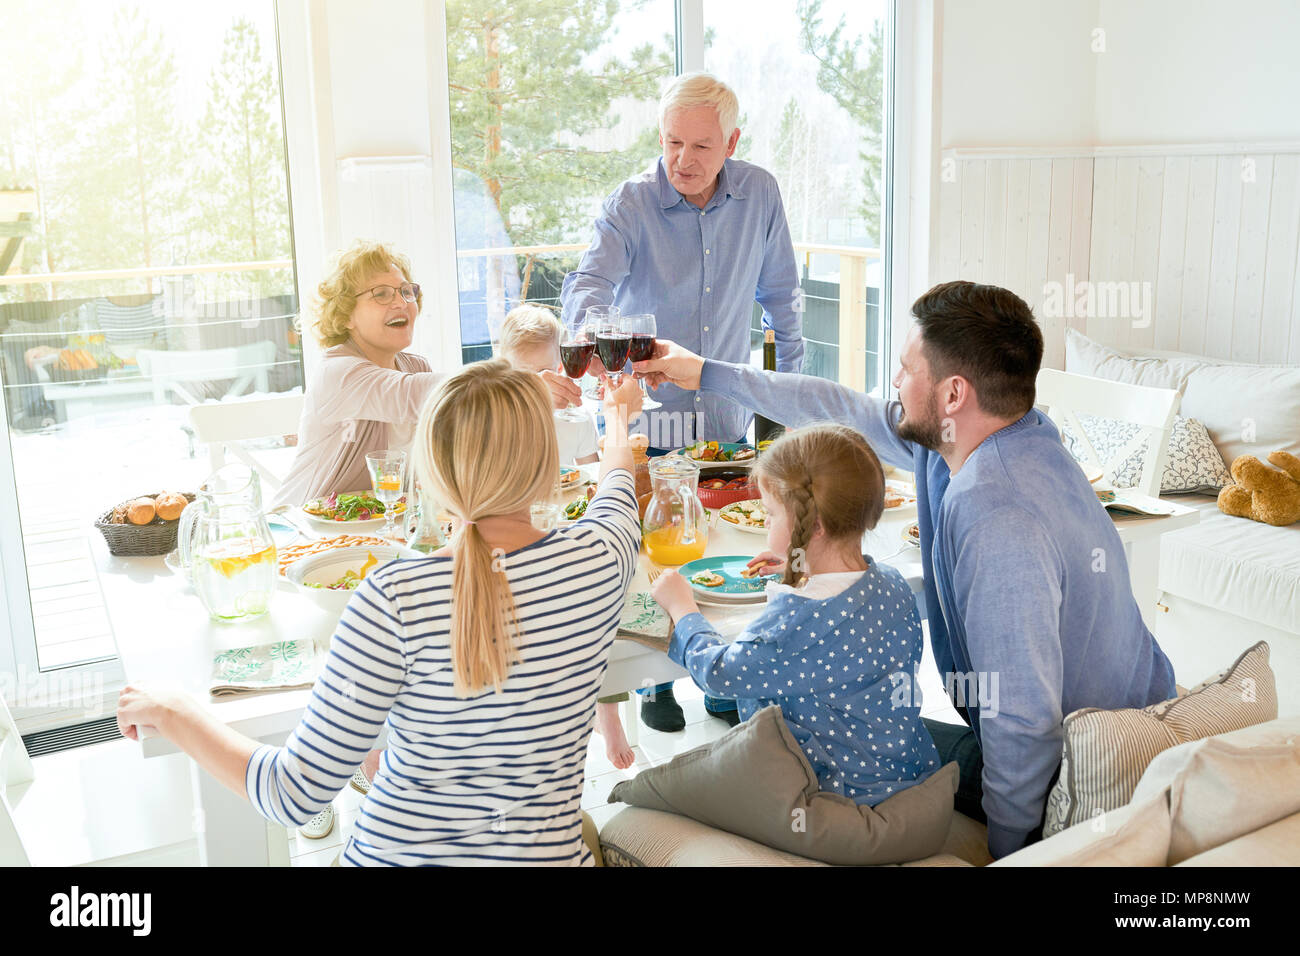 Family Gathering at Dinner - Stock Image